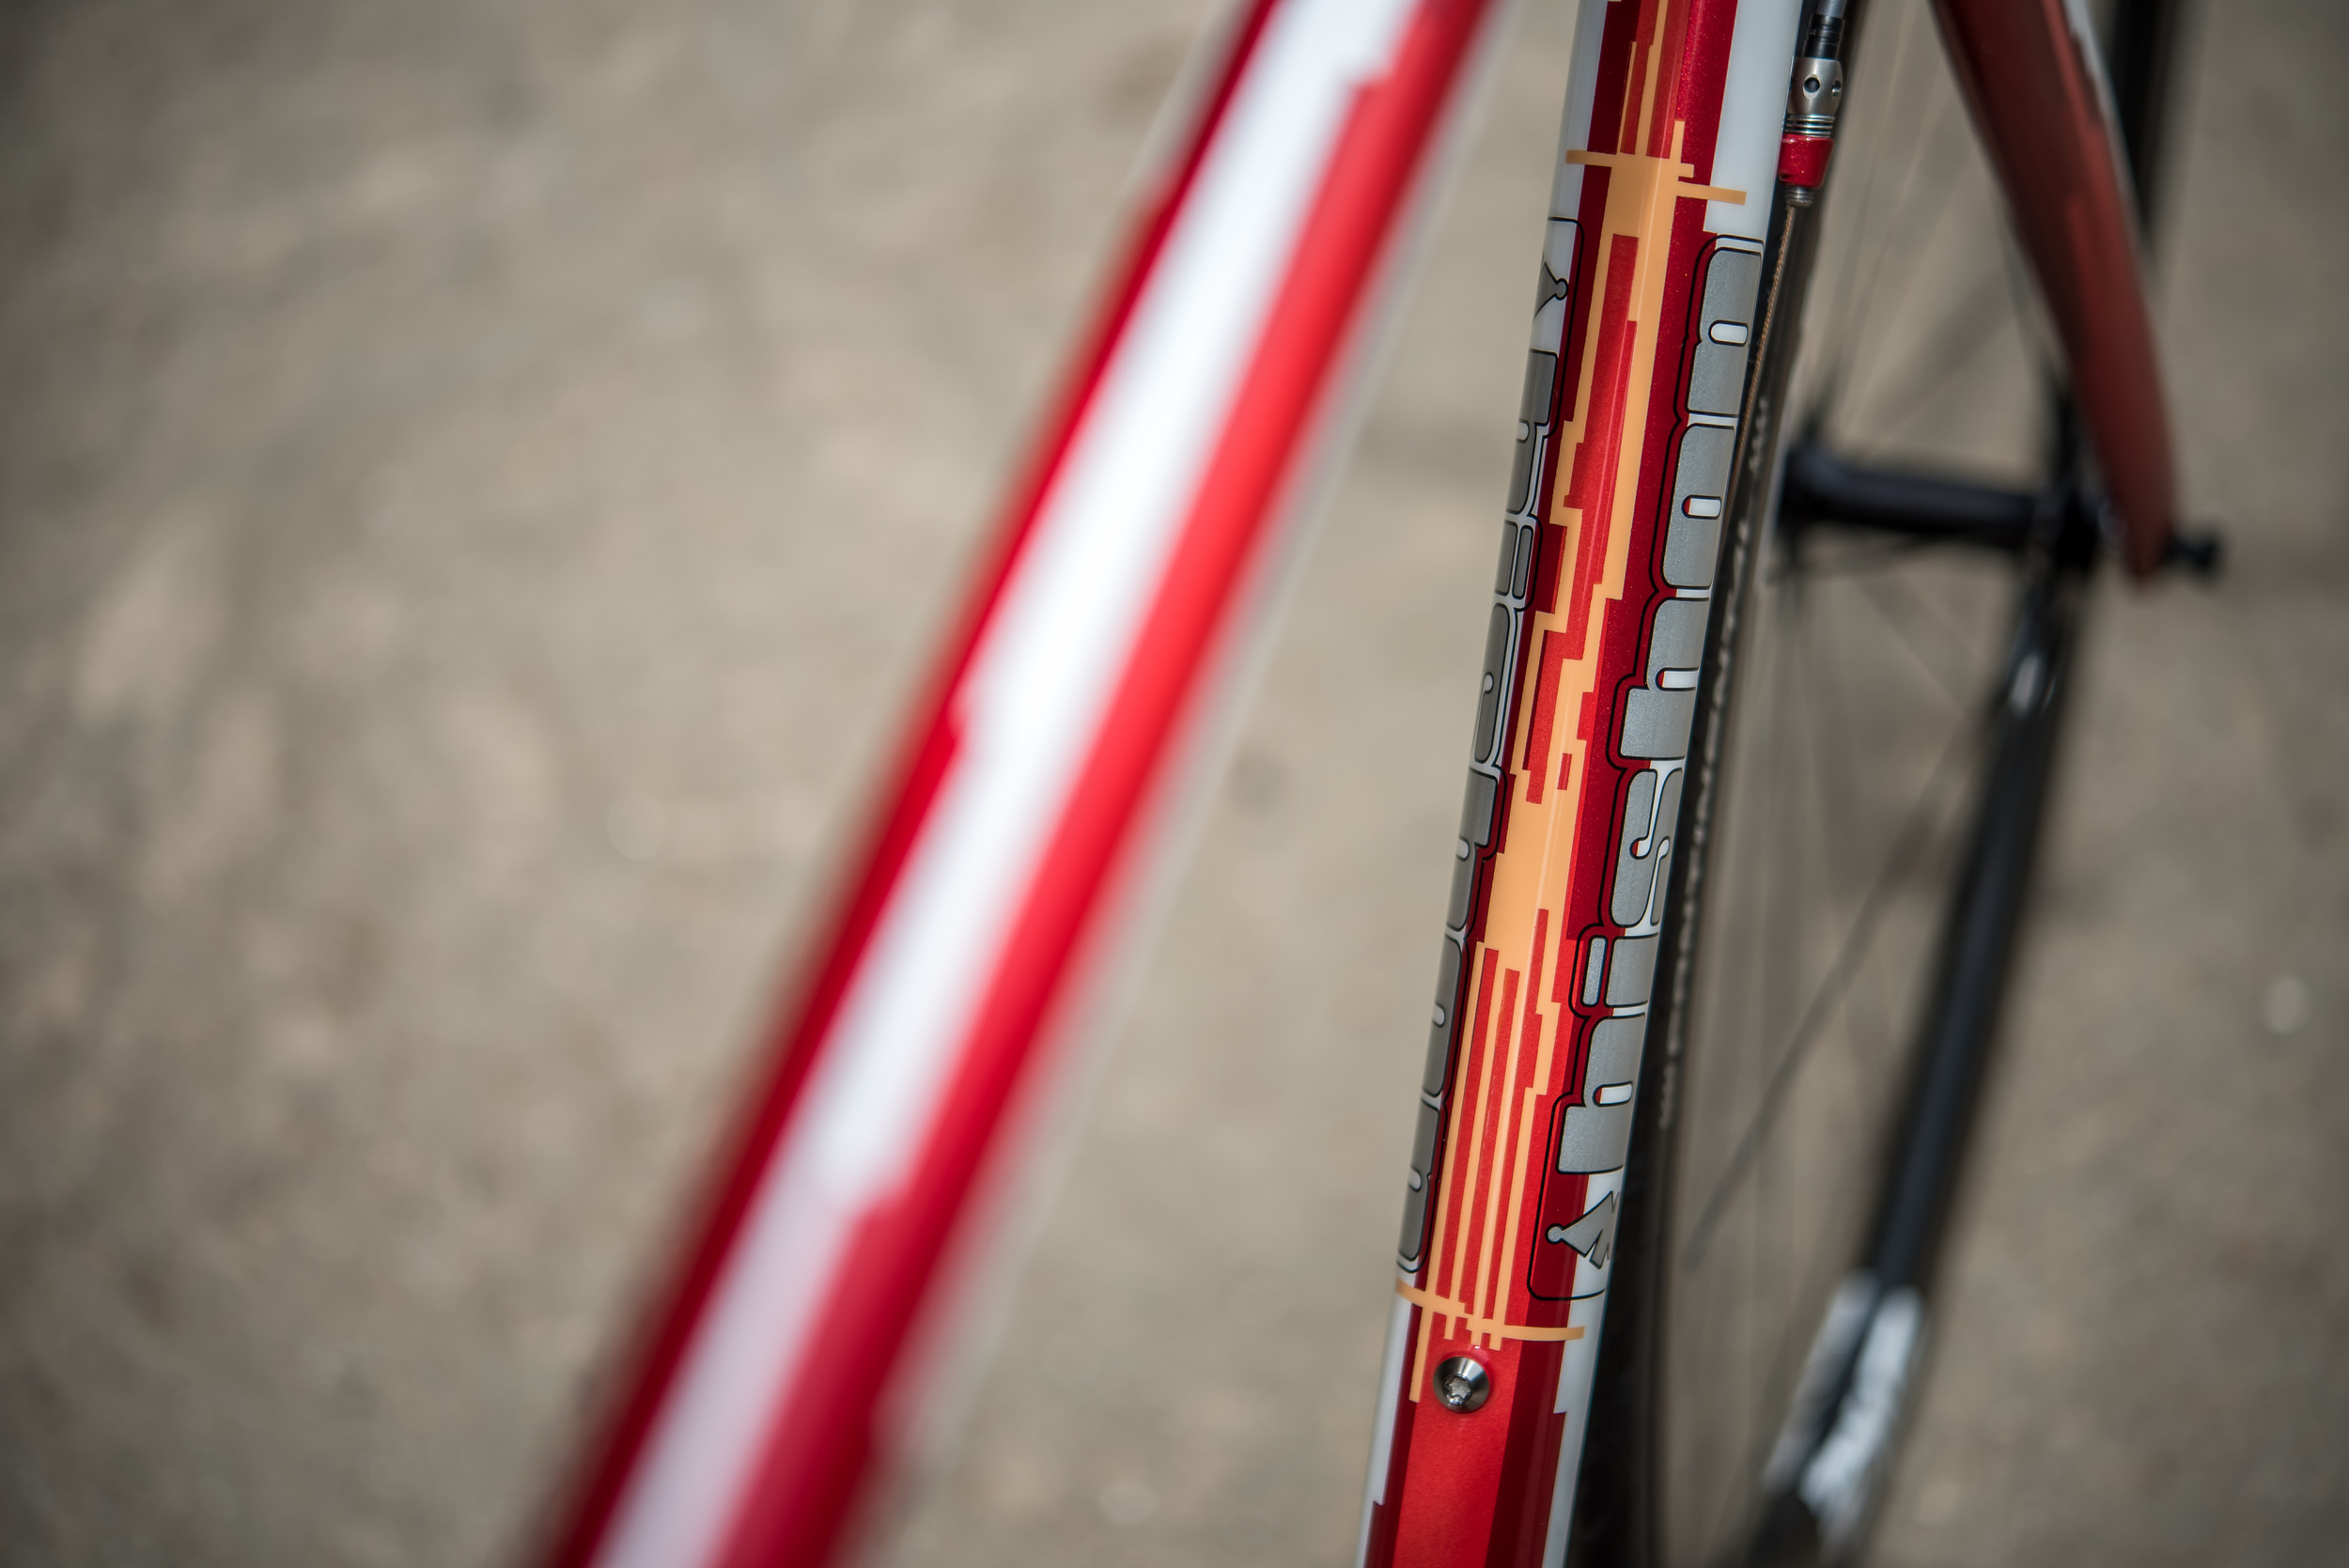 http://www.cycleexif.com/bishop-bikes-ben-falcon-project   Photos by Keith Trotta